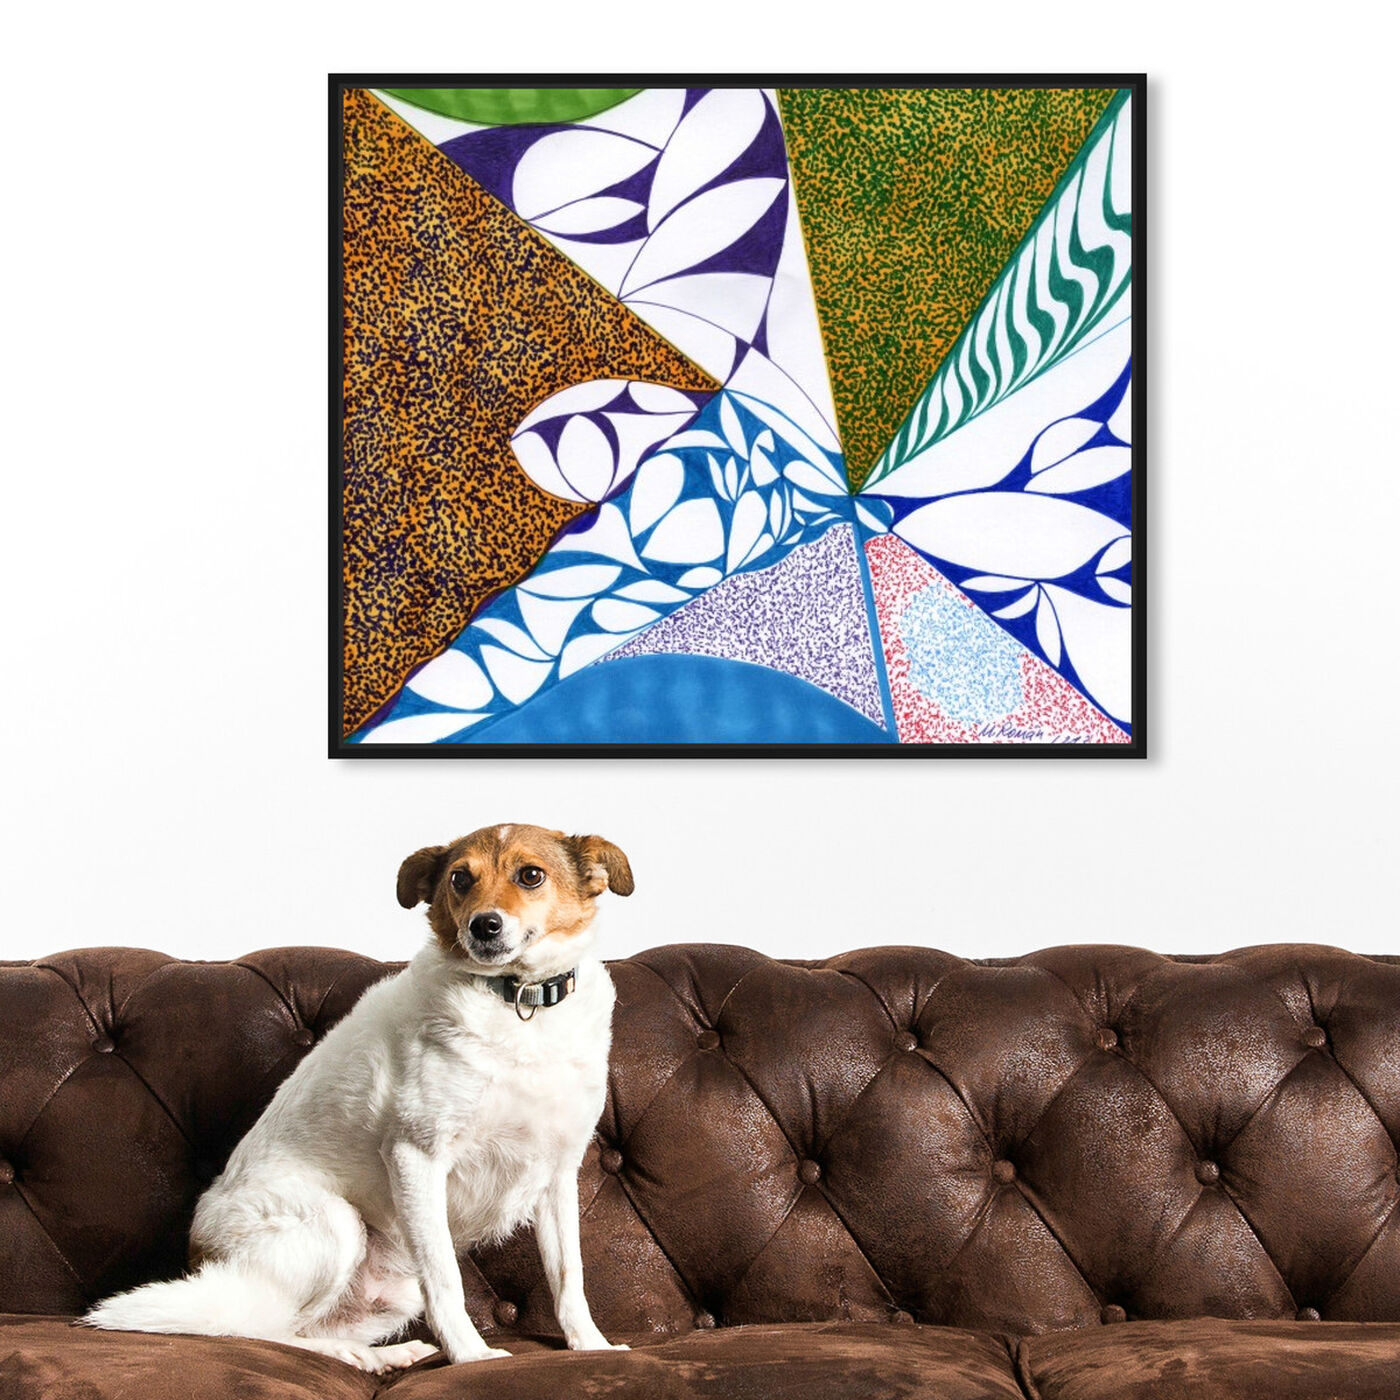 Hanging view of Farmland featuring abstract and geometric art.